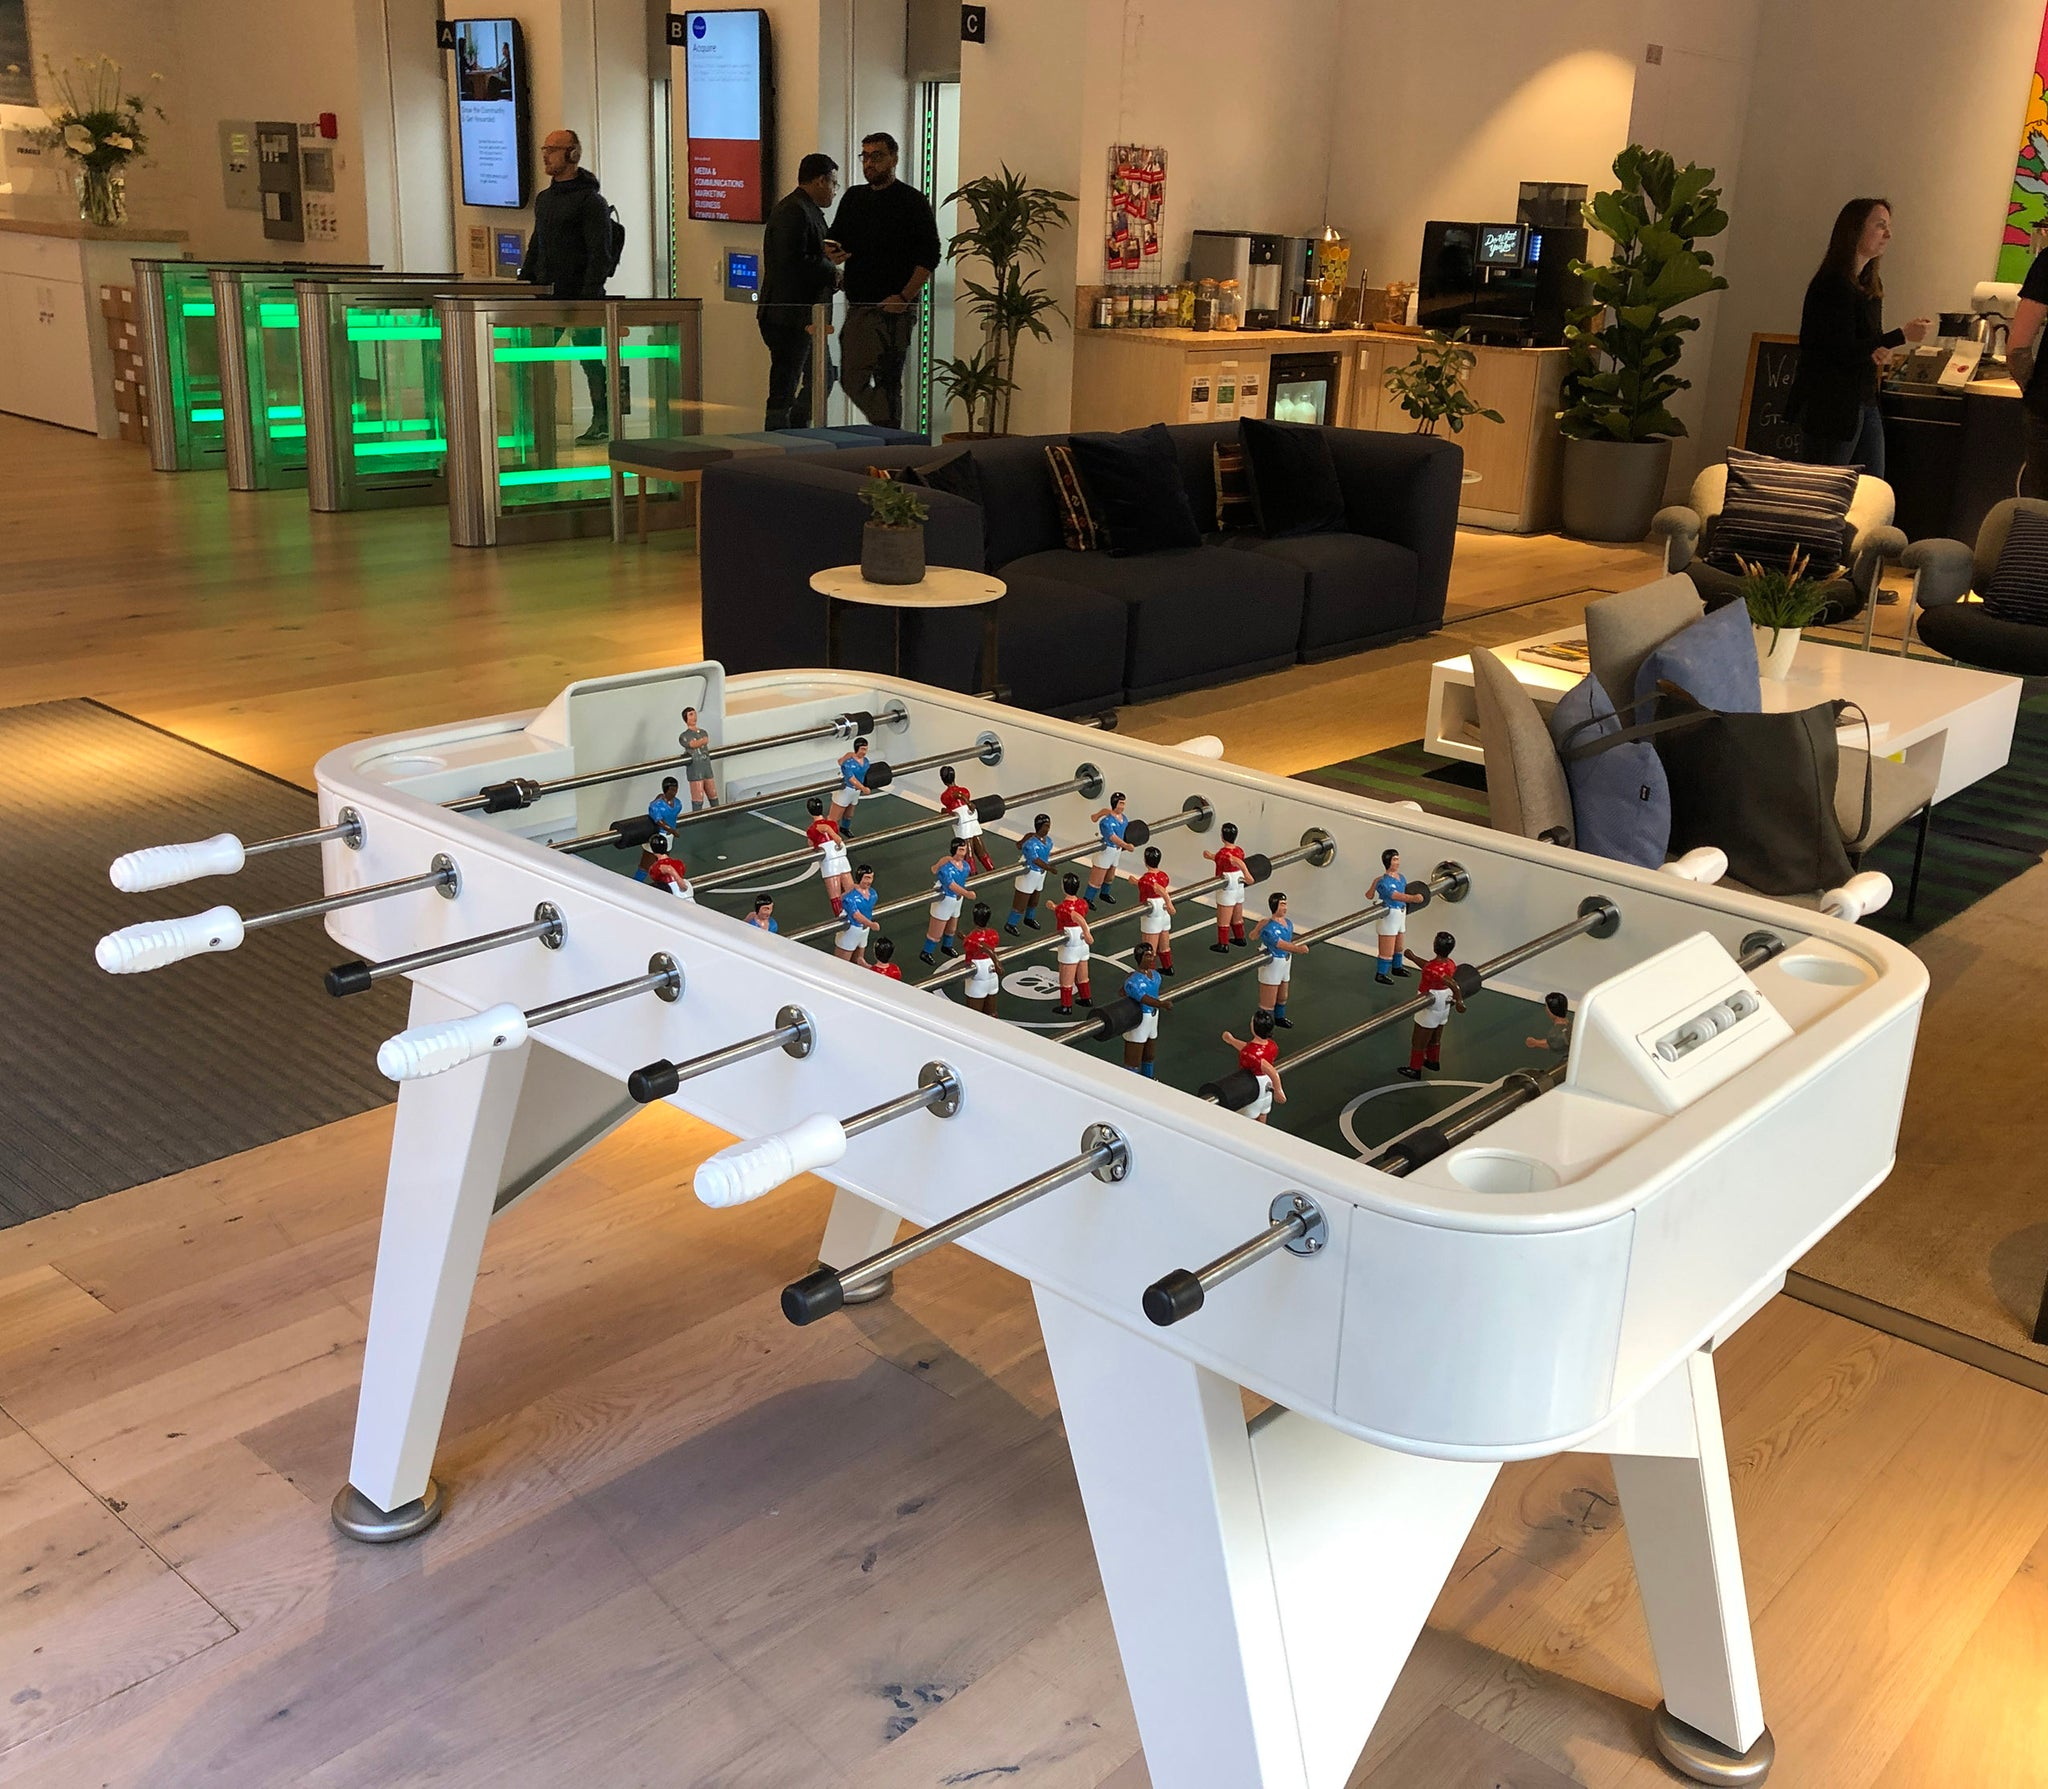 4 top reasons why foosball is one of the most underrated games